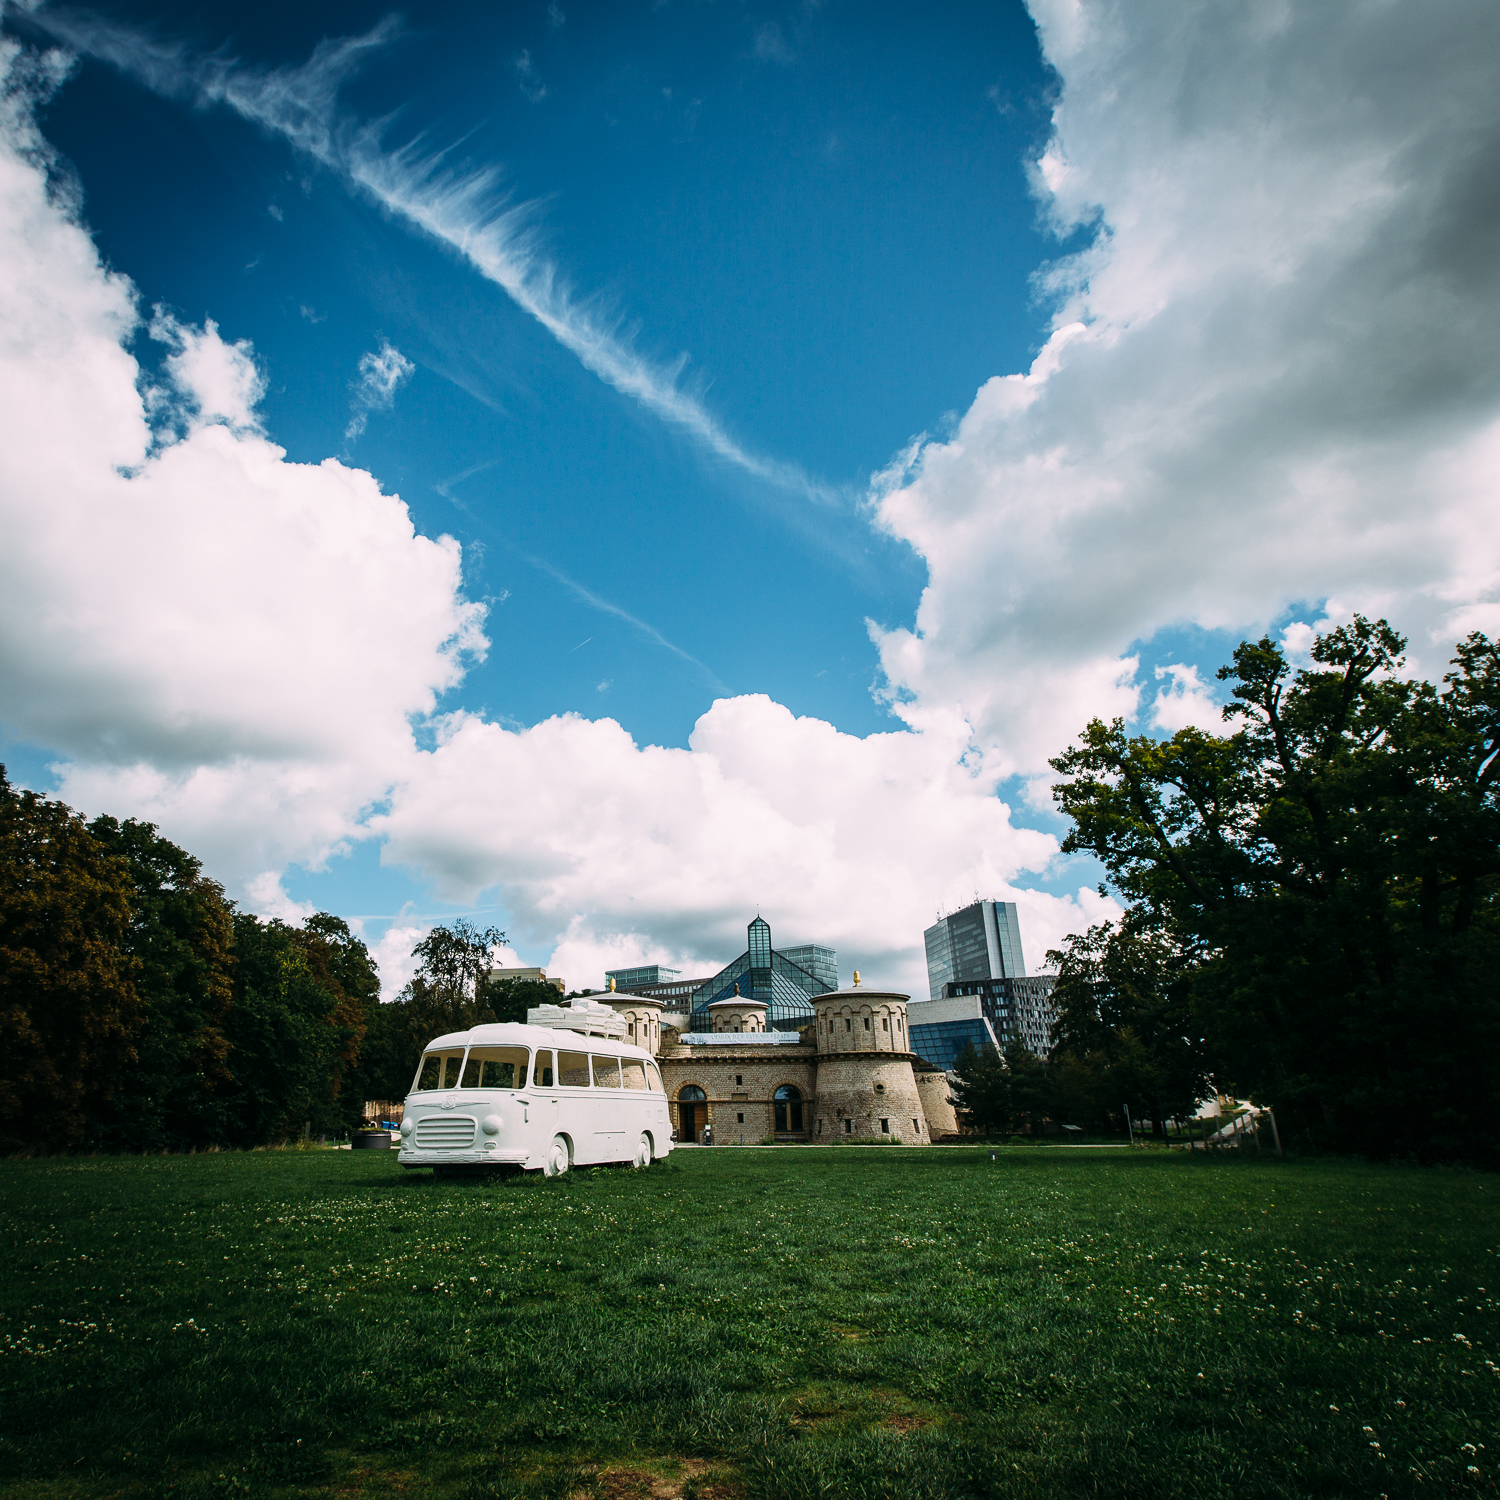 20140819 - Location Scouting-77.jpg